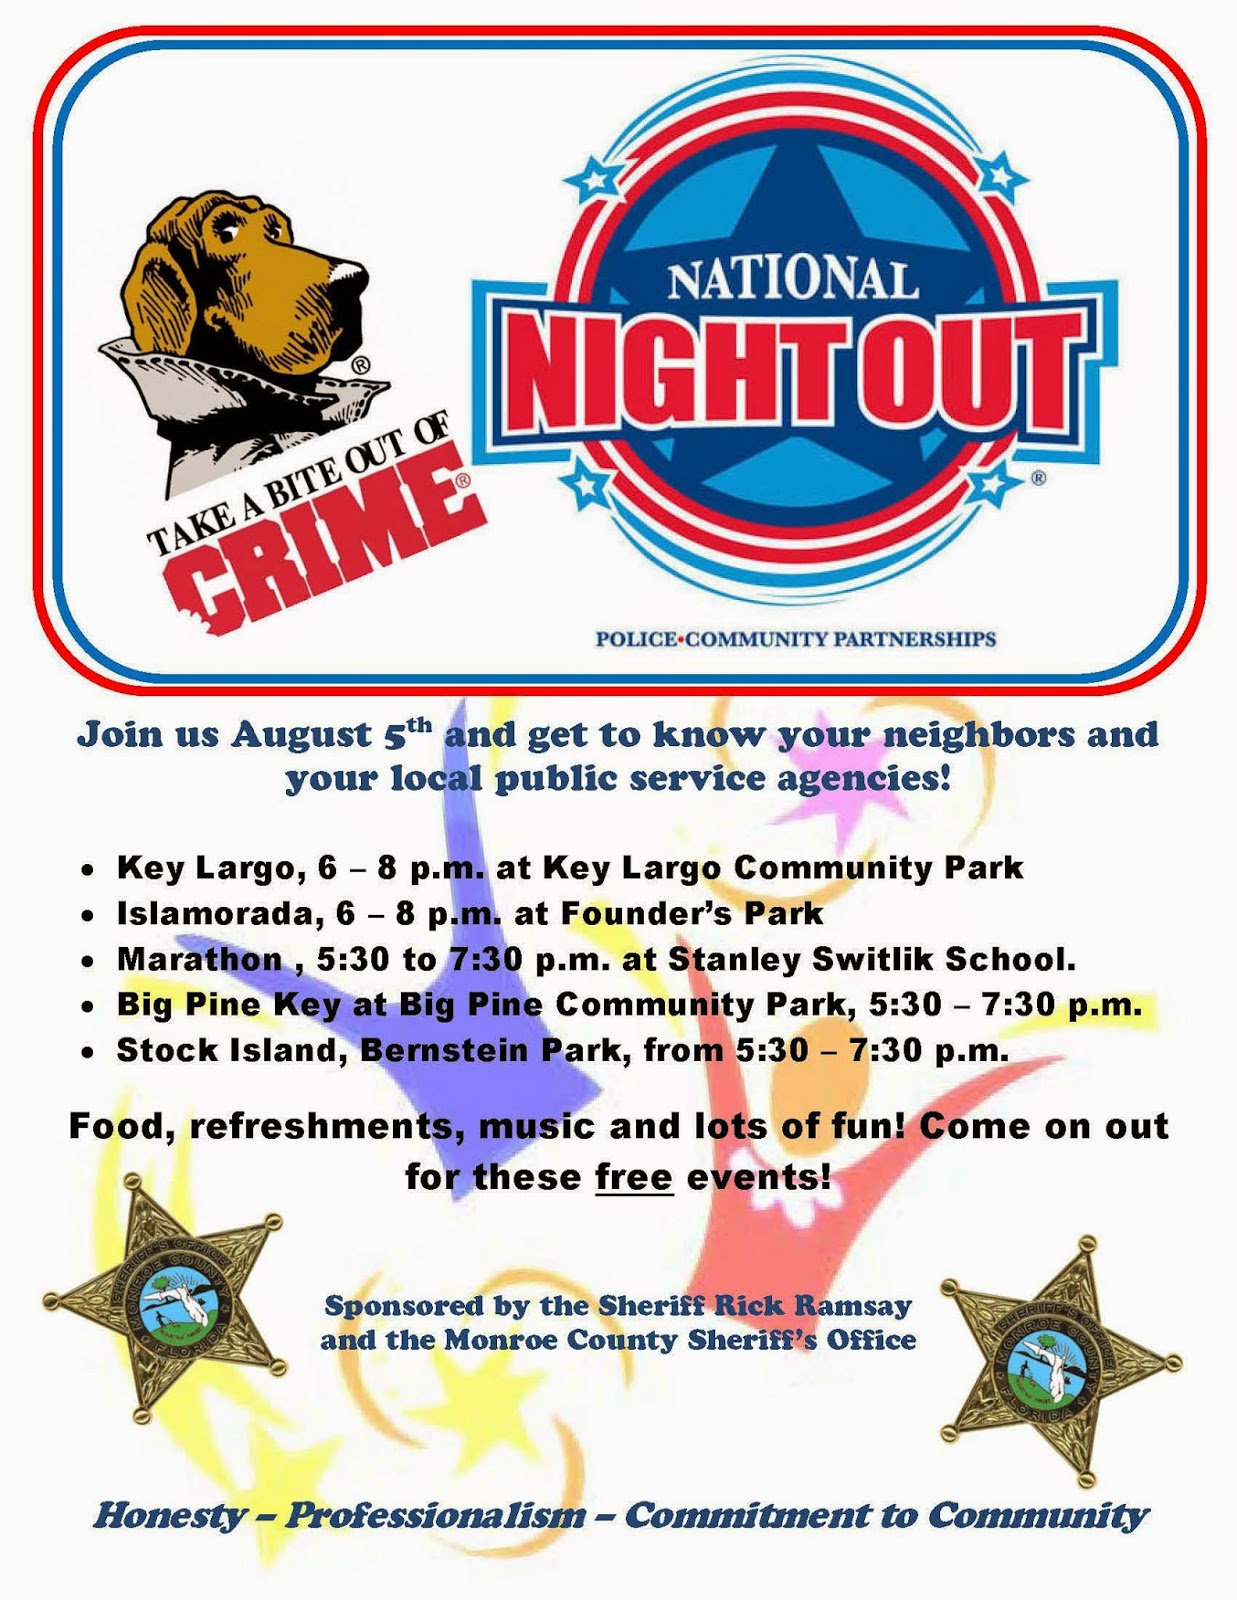 Sheriffs Office Organizes National Night Out Events August 5th